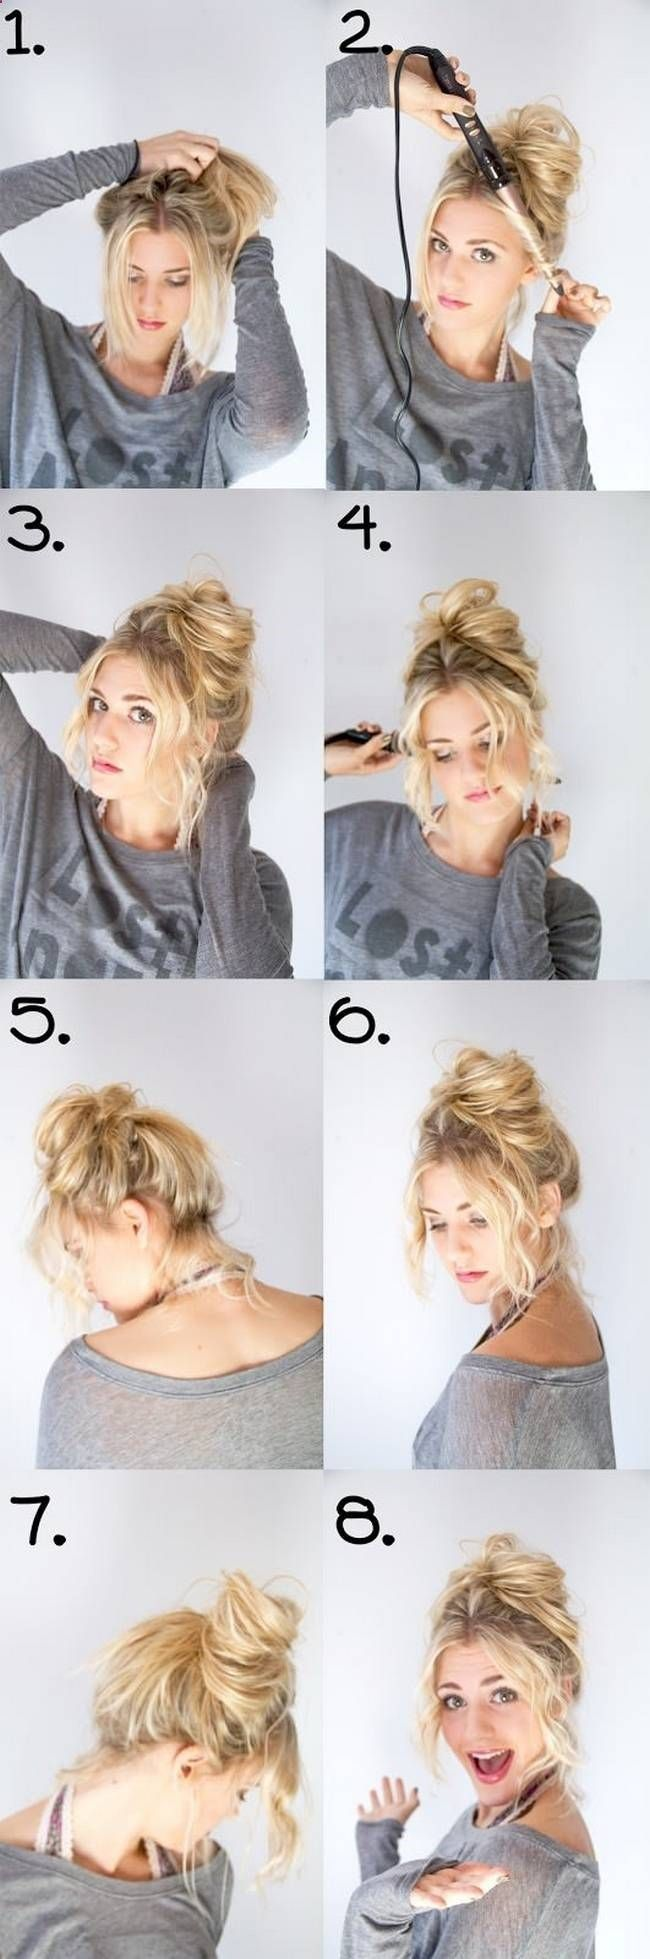 Messy Bun Step By Step Instructions 20 Amazing Step By Step Bun Hairstyles Planet Of Women Healt Hair Styles Bun Hairstyles For Long Hair Long Hair Styles